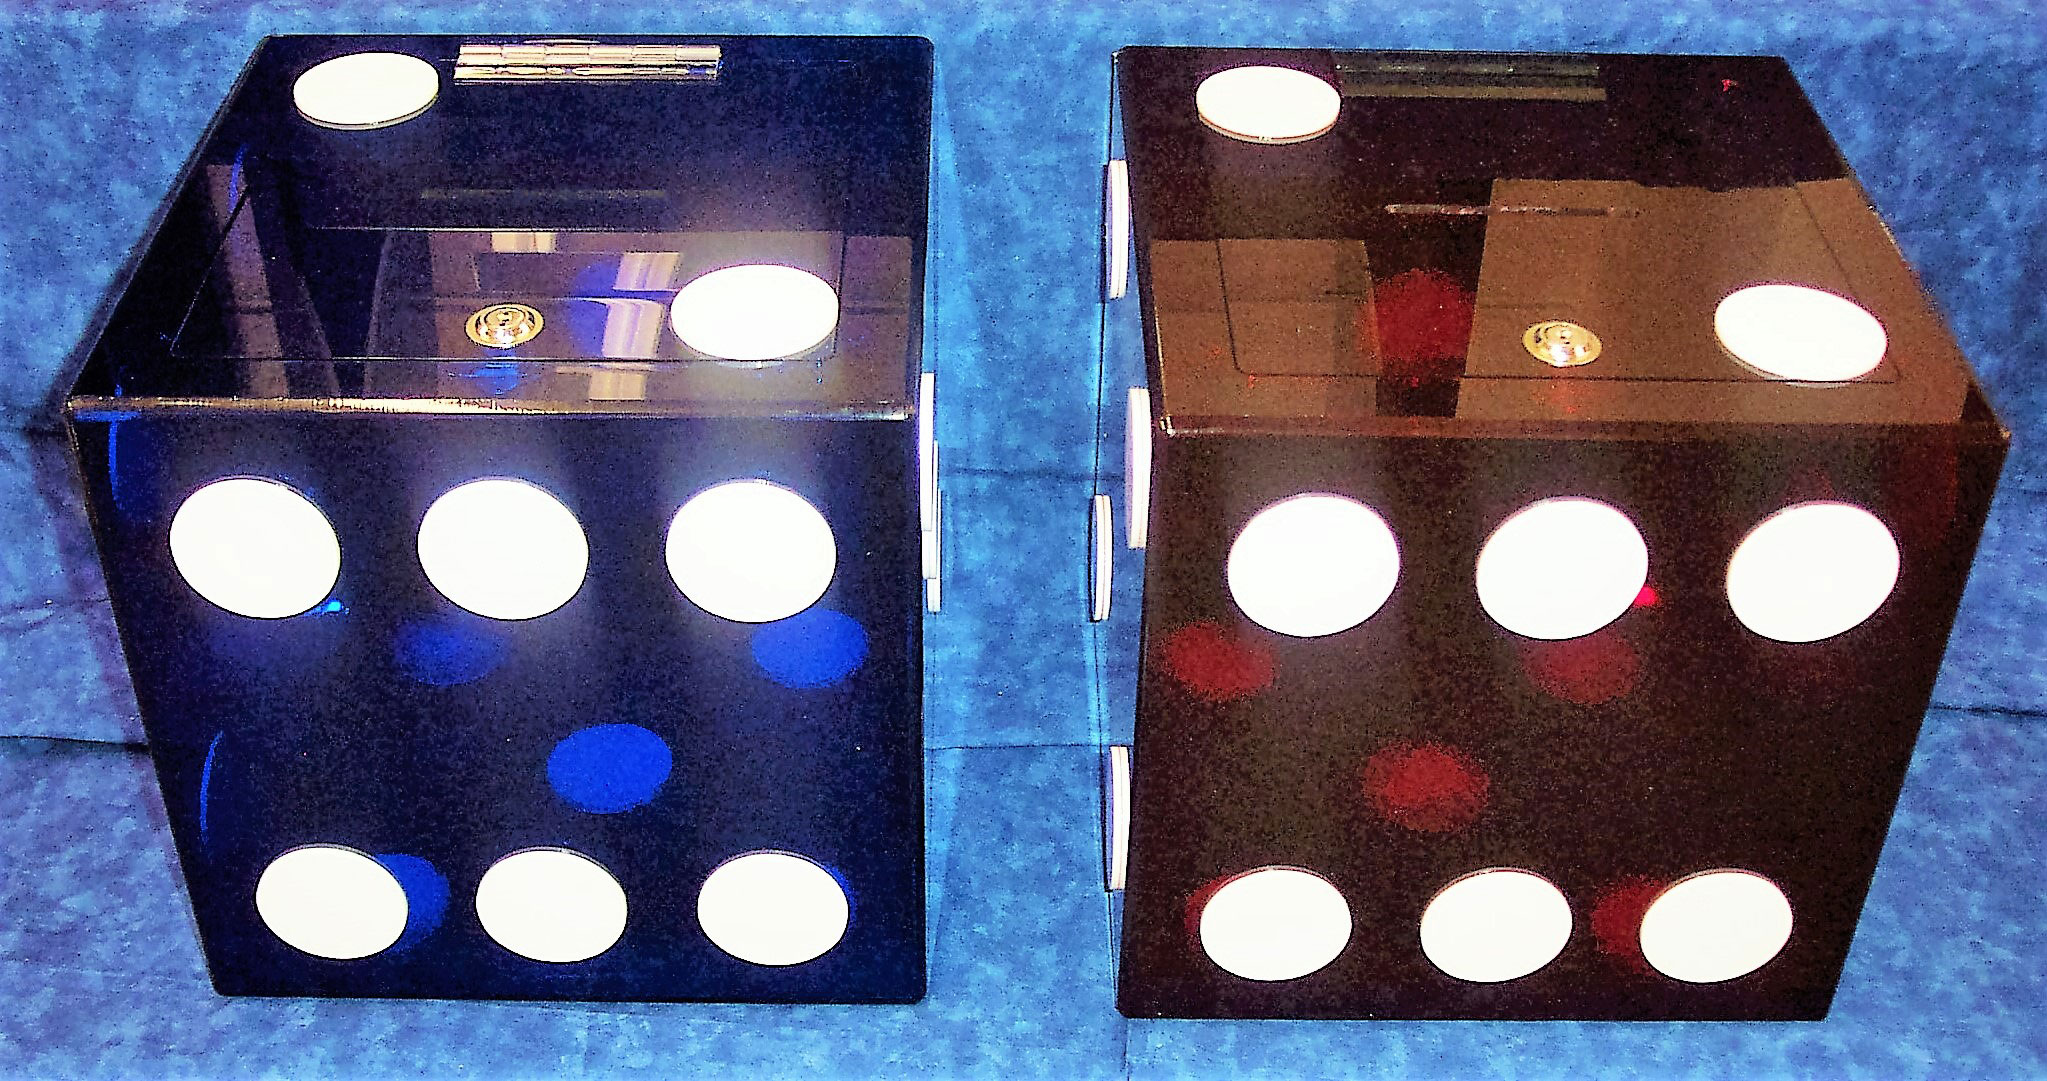 Transparent Dice Ballot Boxes Blue and Red